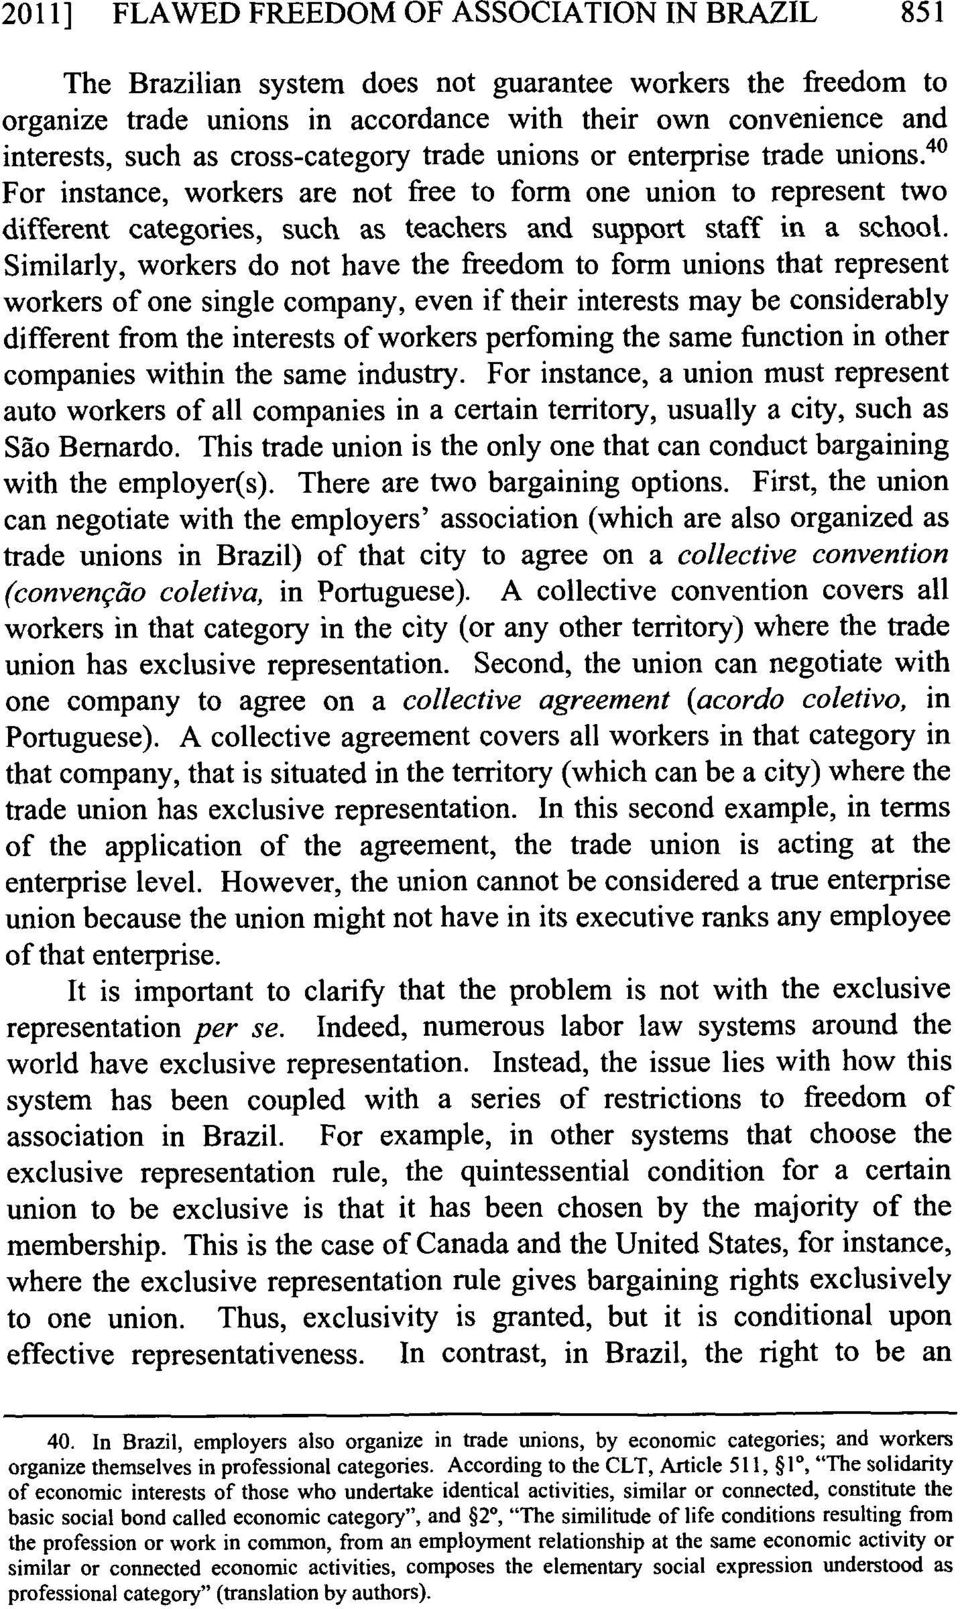 Similarly, workers do not have the freedom to form unions that represent workers of one single company, even if their interests may be considerably different from the interests of workers perfoming